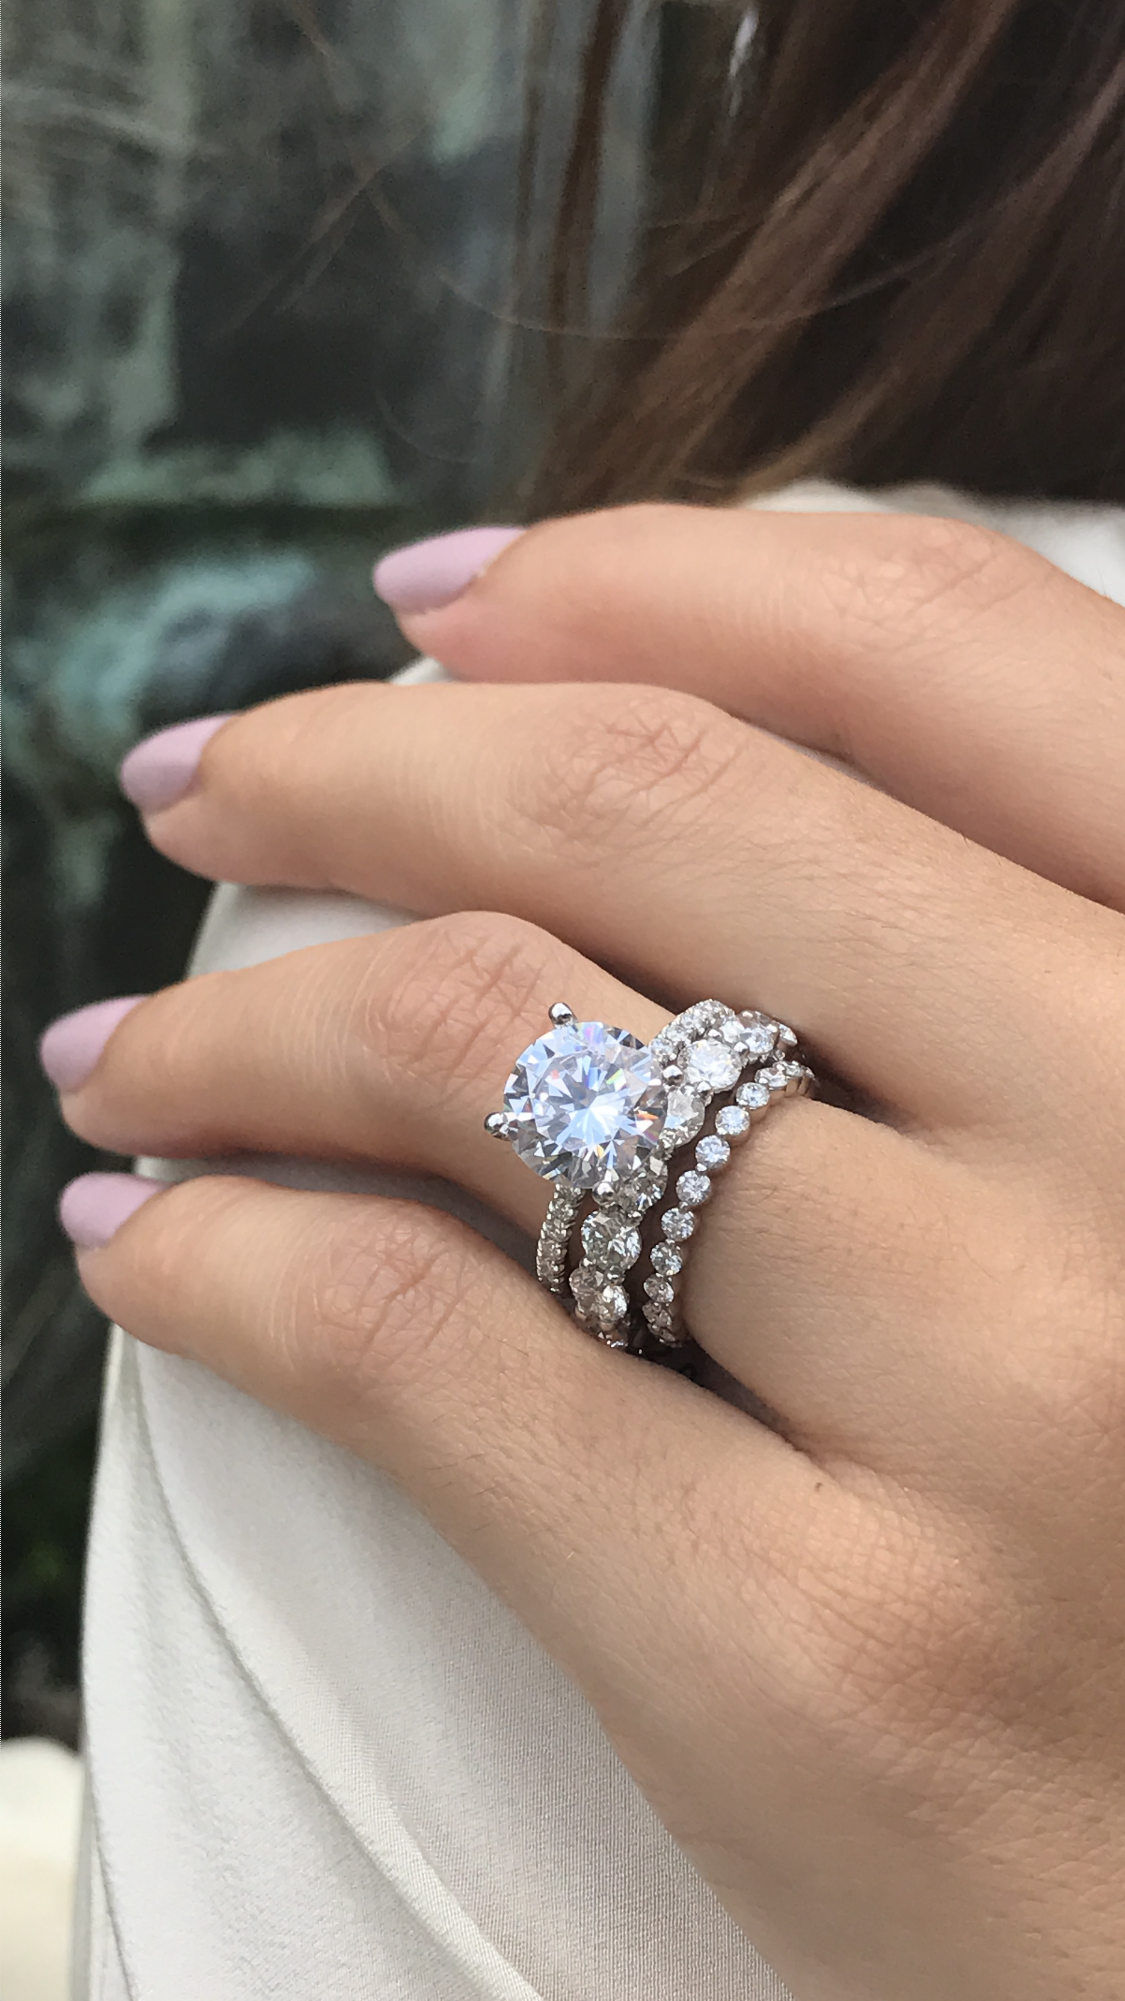 Solitaire Engagement Ring Solitaire Engagement Ring Round 3ct Engagement Ring Eternity Band Stacked Wedding Rings 3ct Engagement Ring Engagement Rings Round